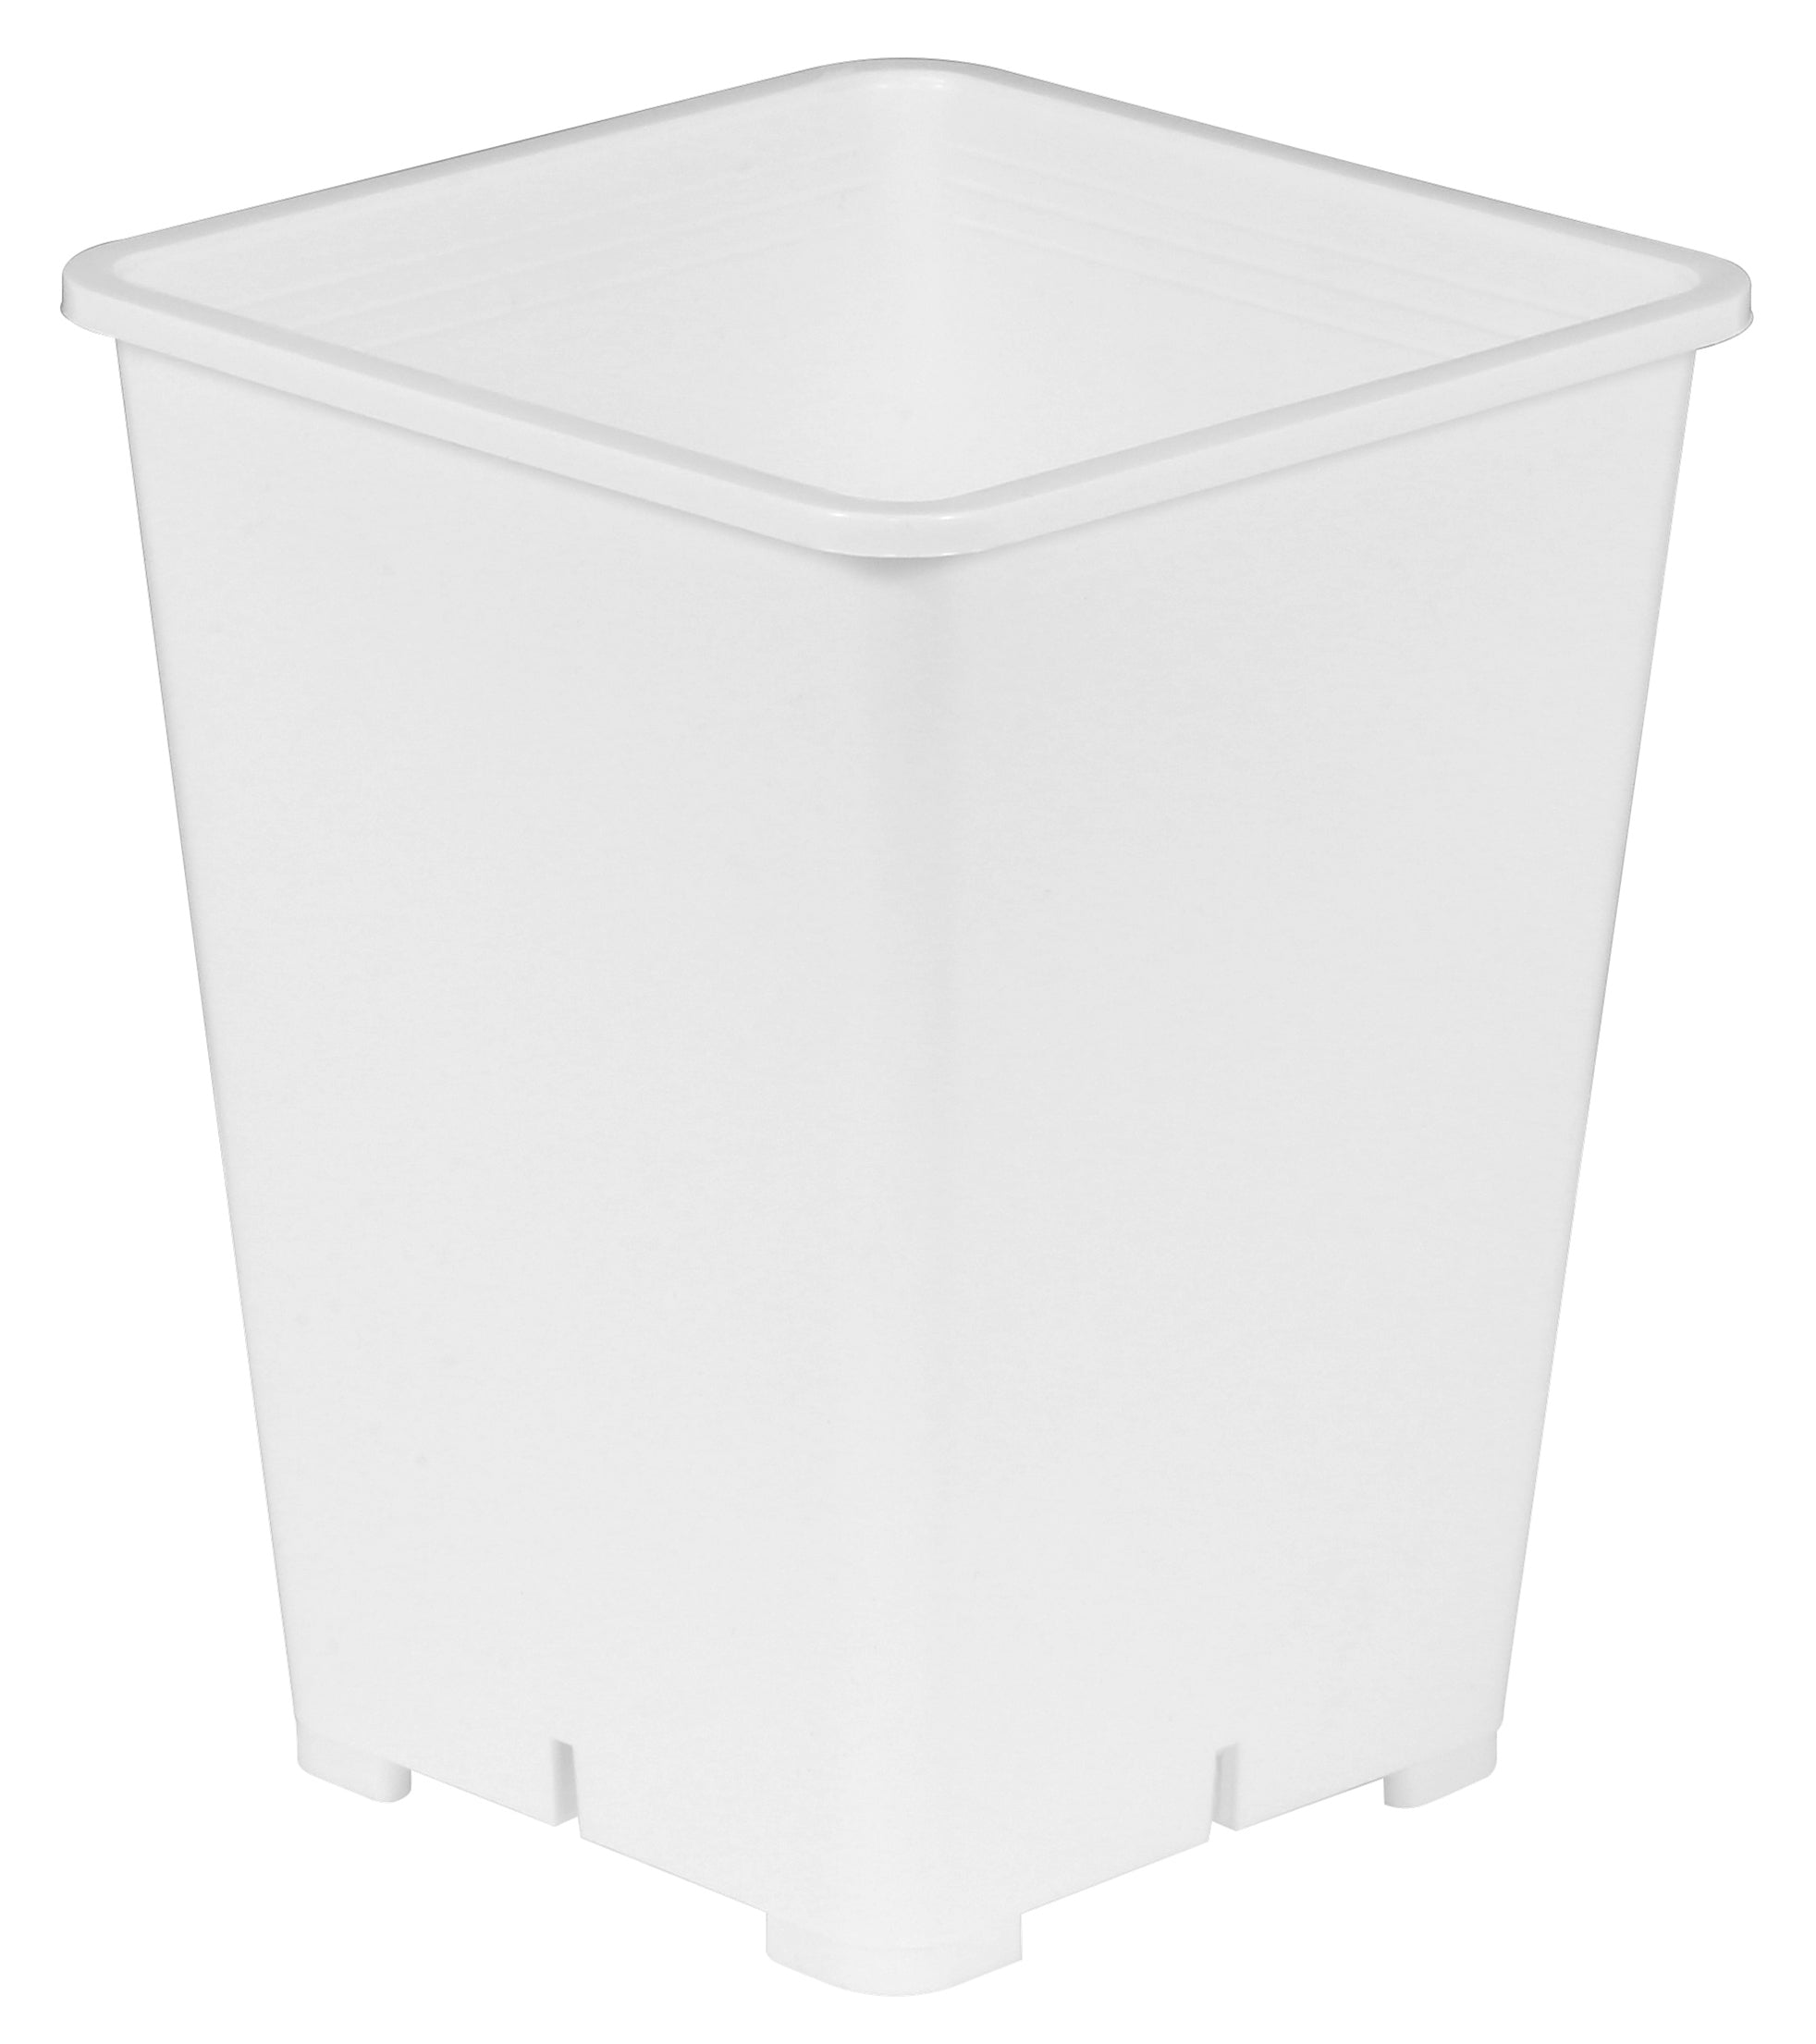 Reusable Square White Plastic Planters